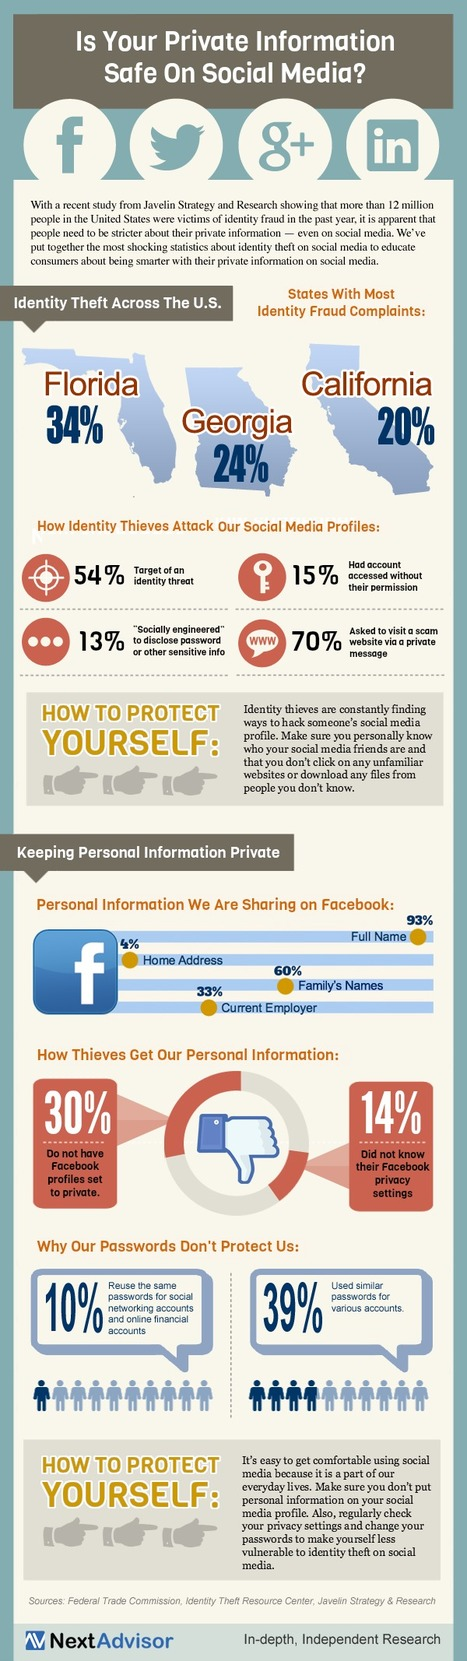 Is Your Private Information Safe on Social Media? [Infographic] | Inspiring Social Media | Scoop.it